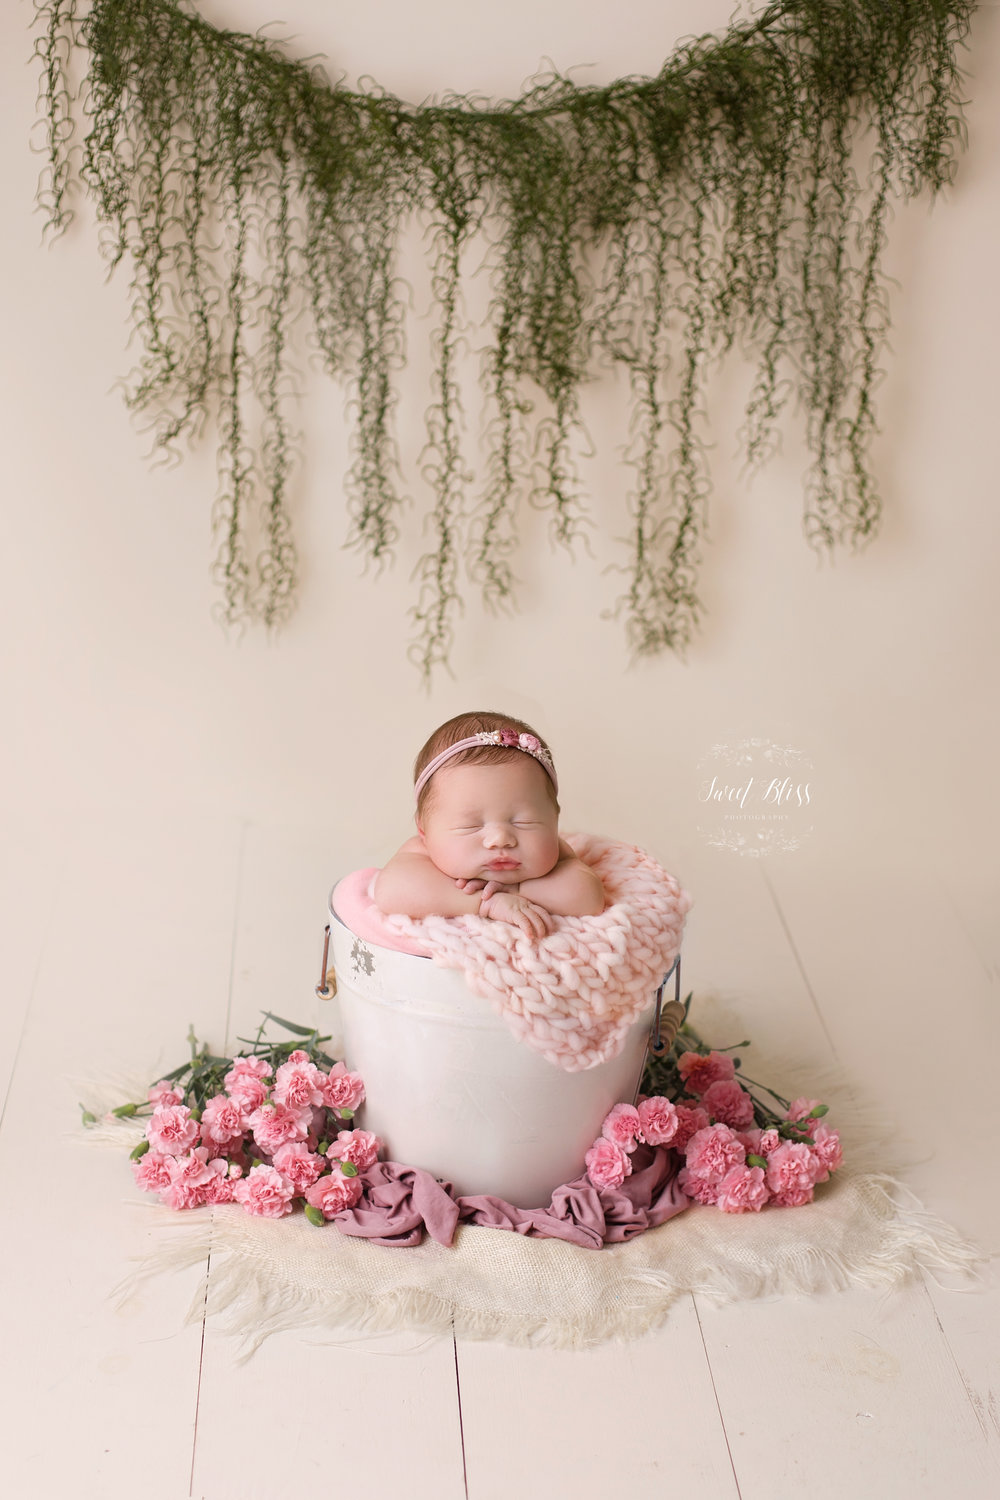 If you are looking for a baltimore newborn photographer harford county newborn photography please contact me so we can start planning your dream session